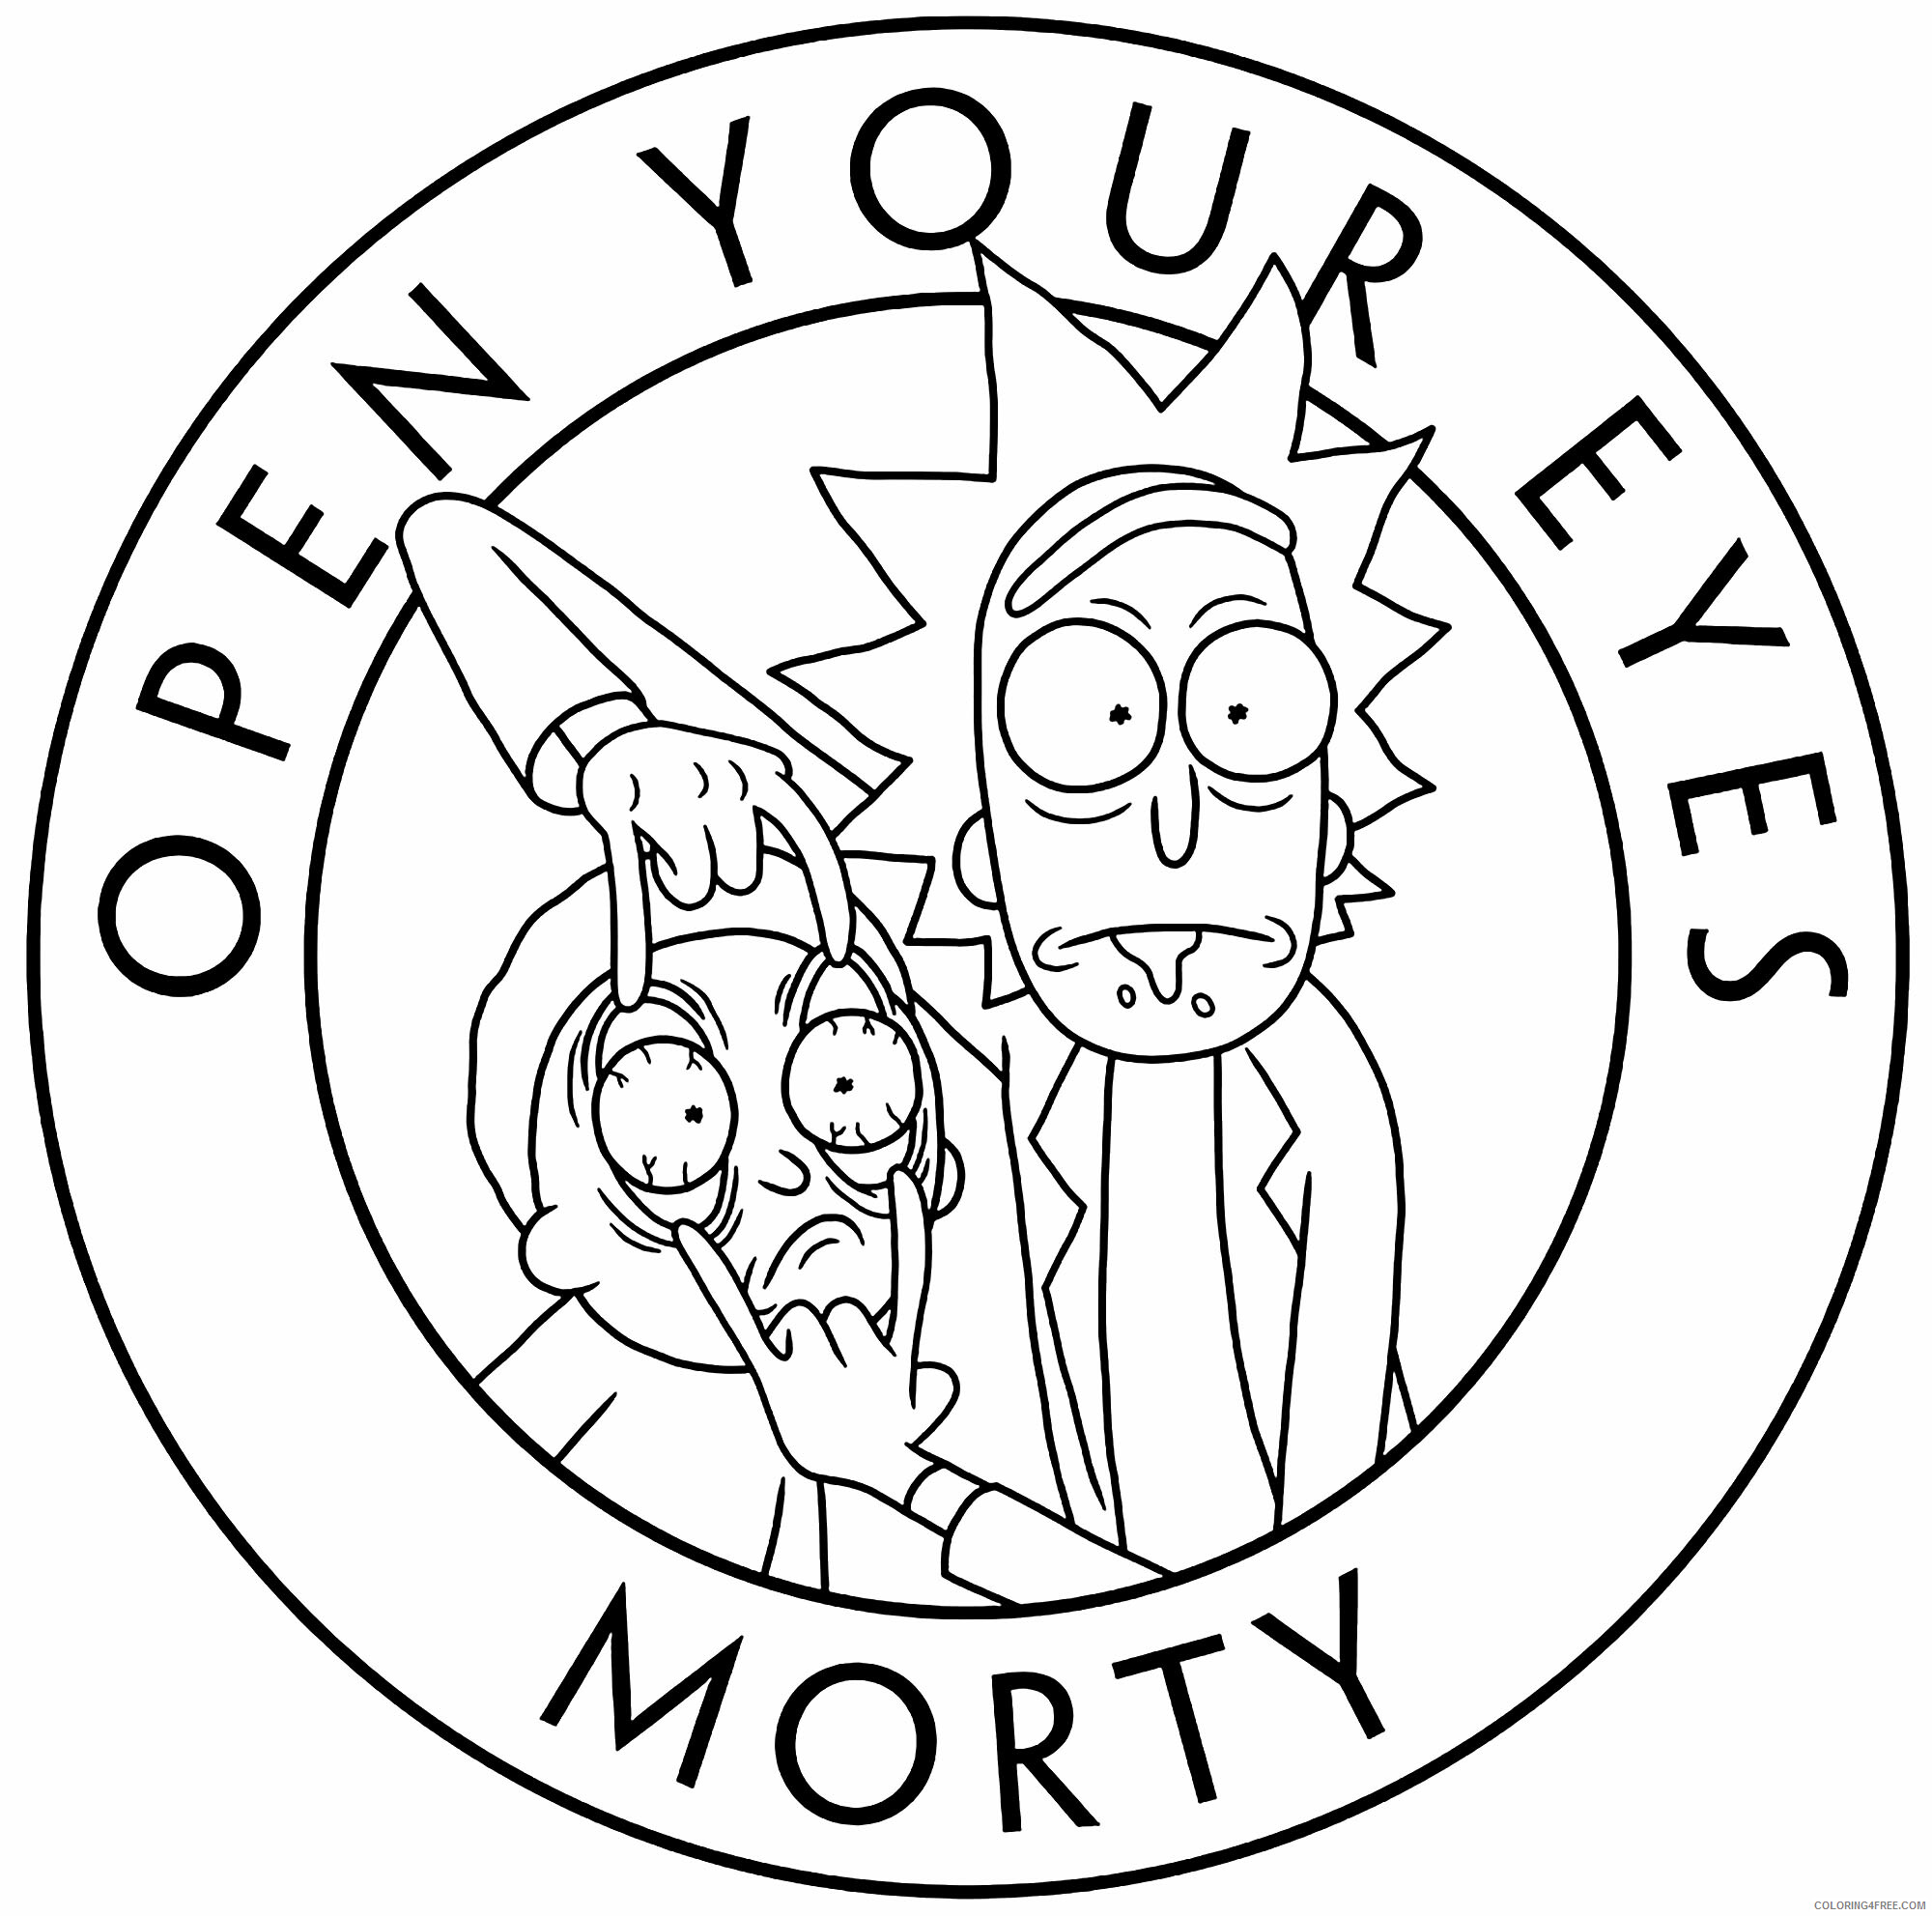 Eyes Coloring Pages for Kids Open Your Eyes Morty Printable 2021 186 Coloring4free